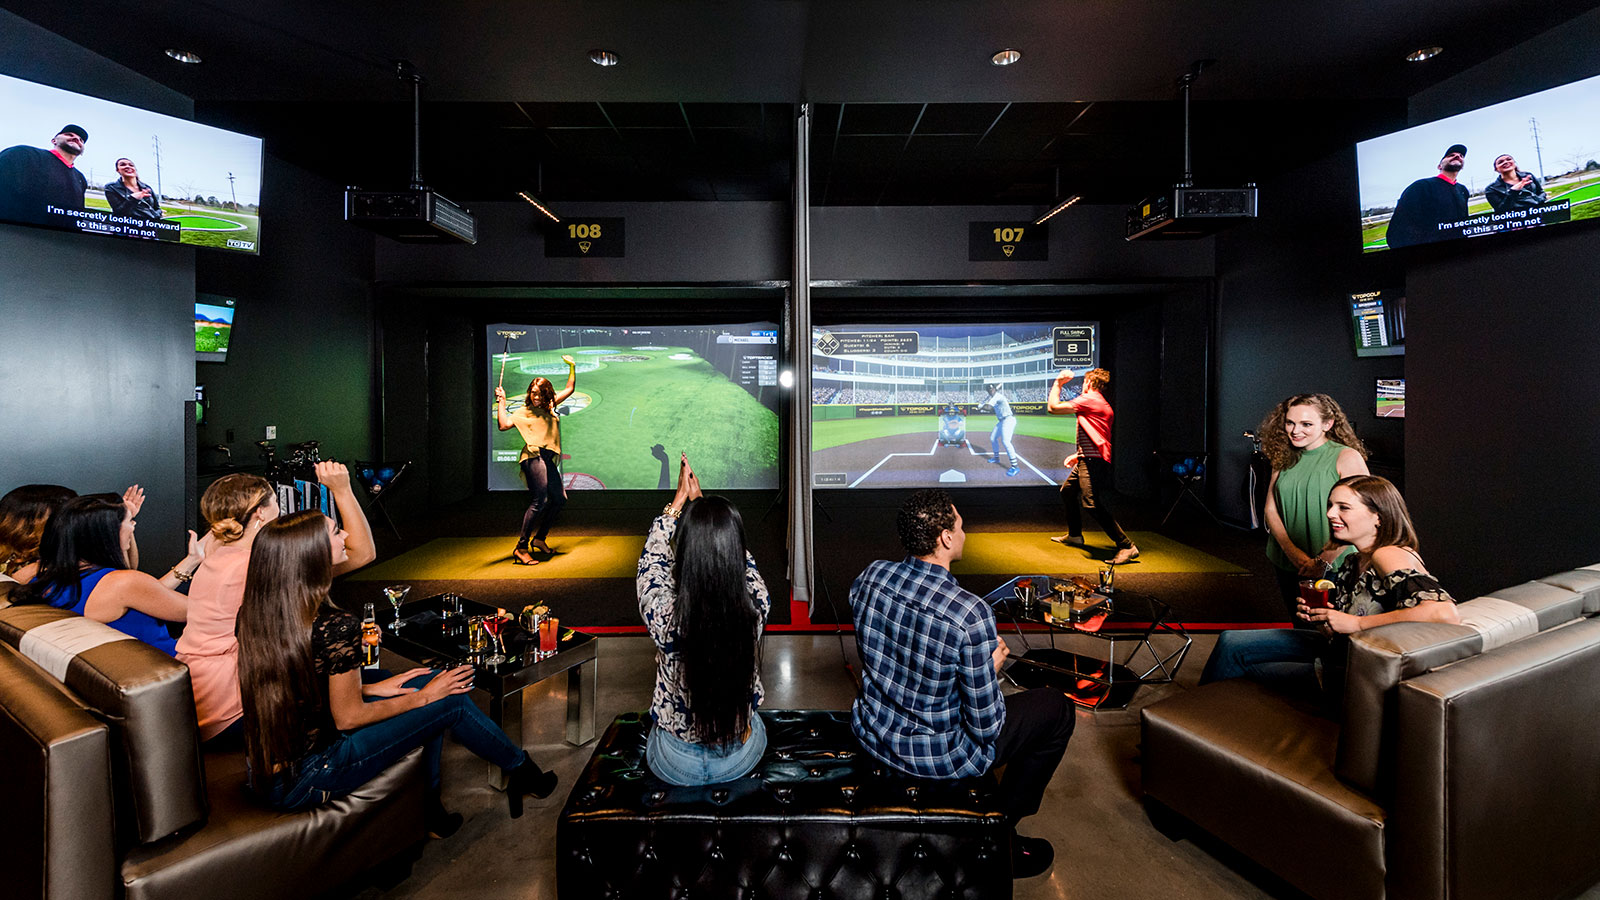 Group of adults socialize and watch others play virtual golf and baseball in the TOPGOLF SWING SUITE